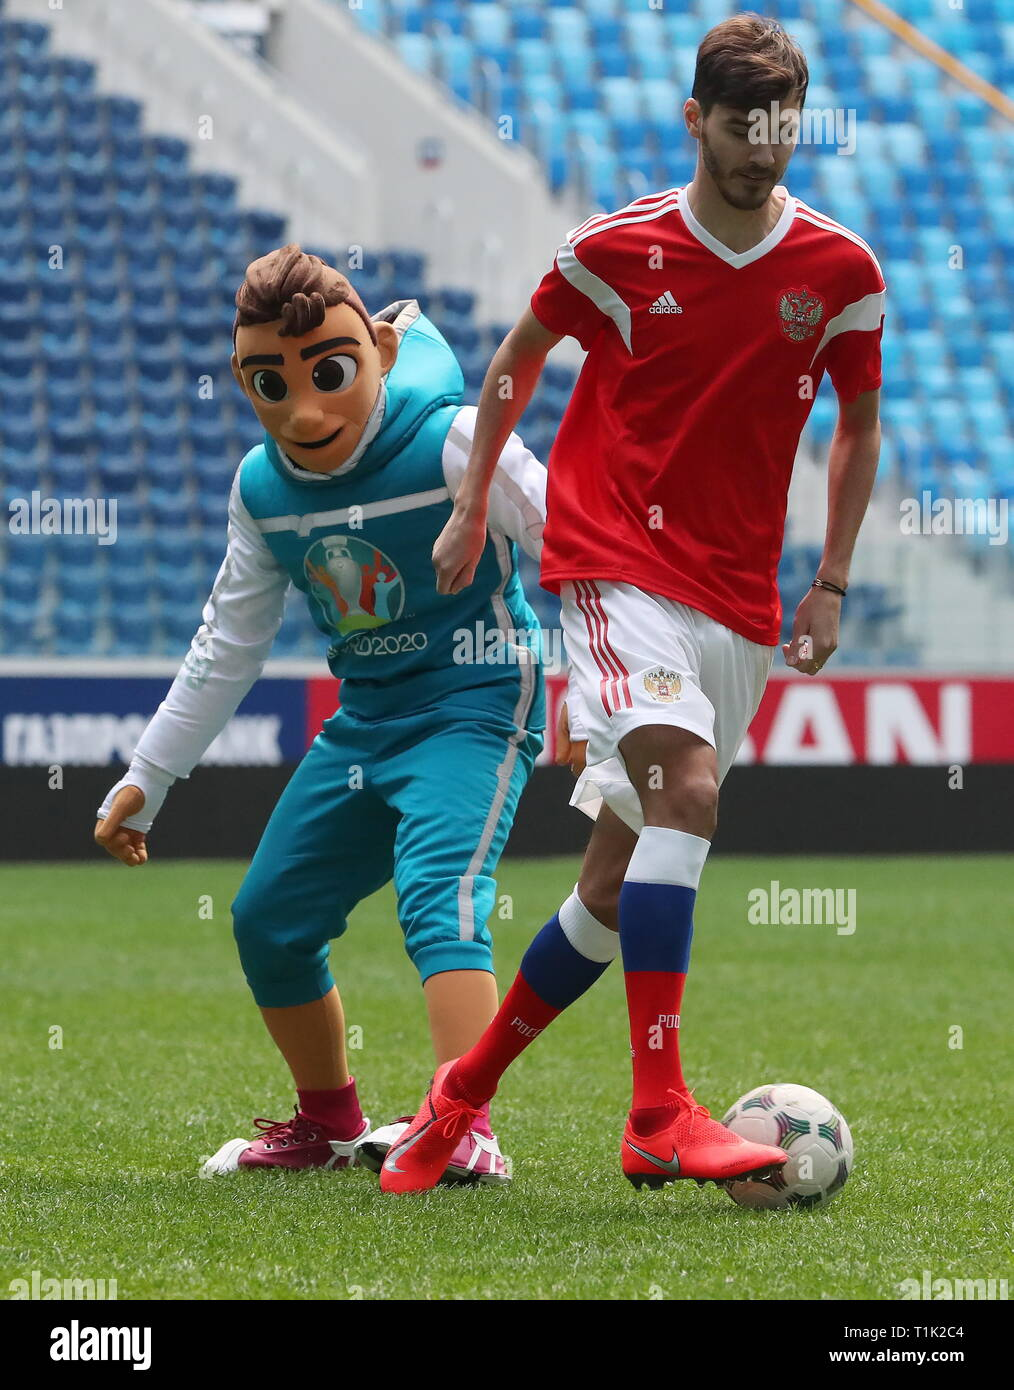 St Petersburg Russia 27th Mar 2019 St Petersburg Russia March 27 2019 Fc Zenit St Petersburg Midfielder Alexander Yerokihn And Uefa Euro 2020 Official Mascot Skillzy Play Football At Gazprom Arena